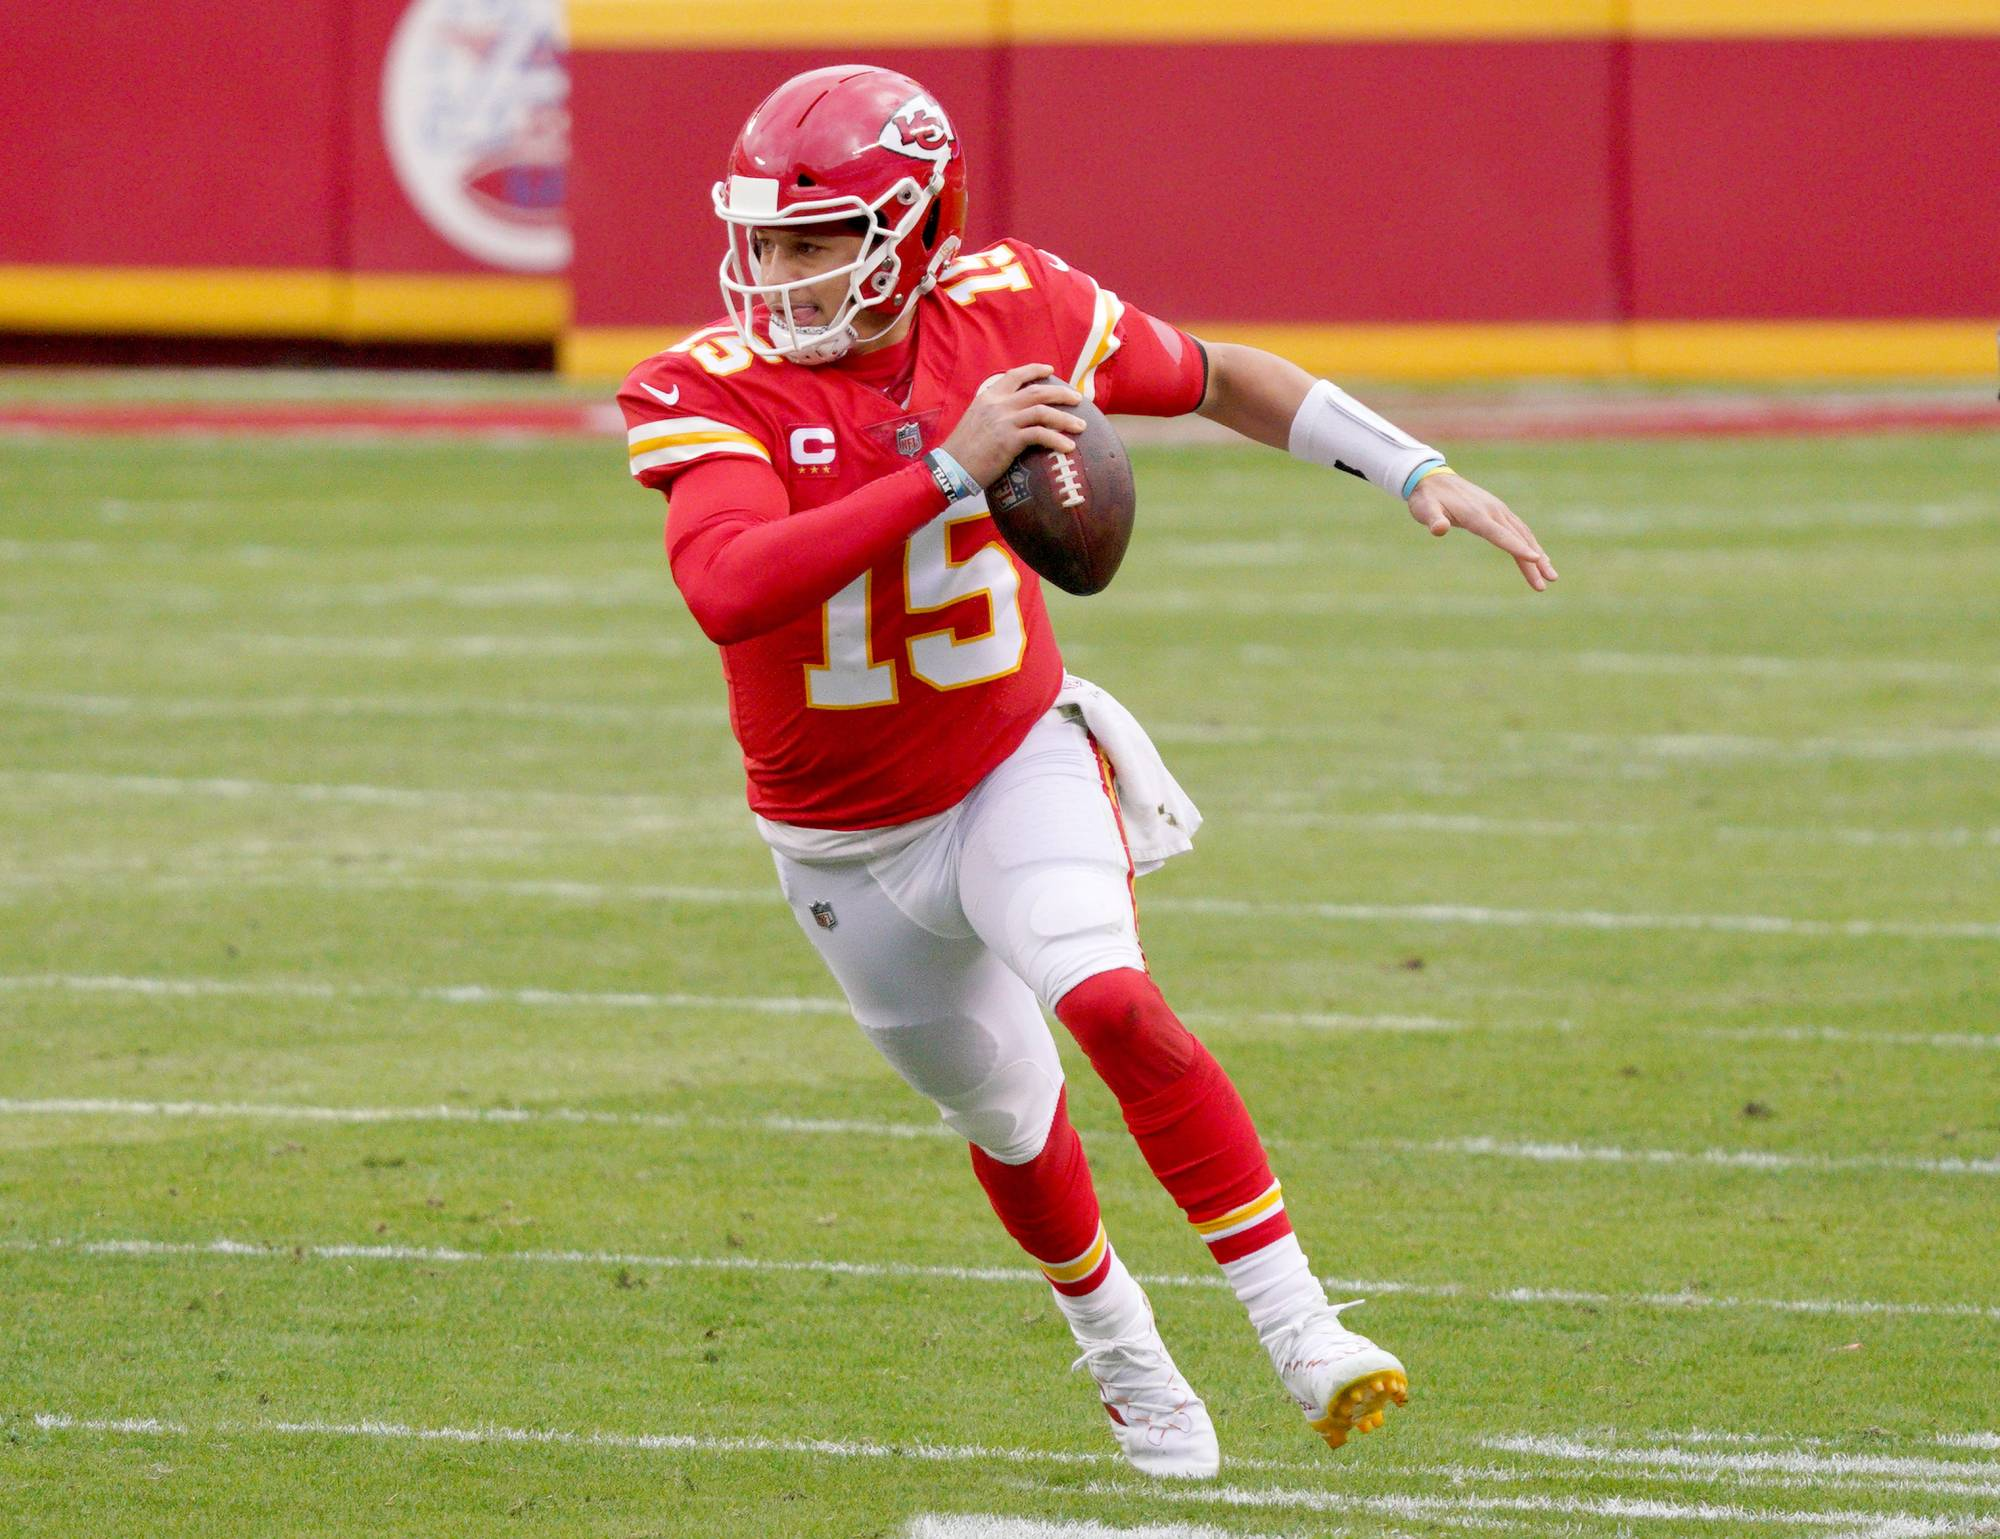 Chiefs quarterback Patrick Mahomes runs with the ball during the second half of a playoff game against the Browns in Kansas City, Missouri, on Jan. 17. | USA TODAY / VIA REUTERS